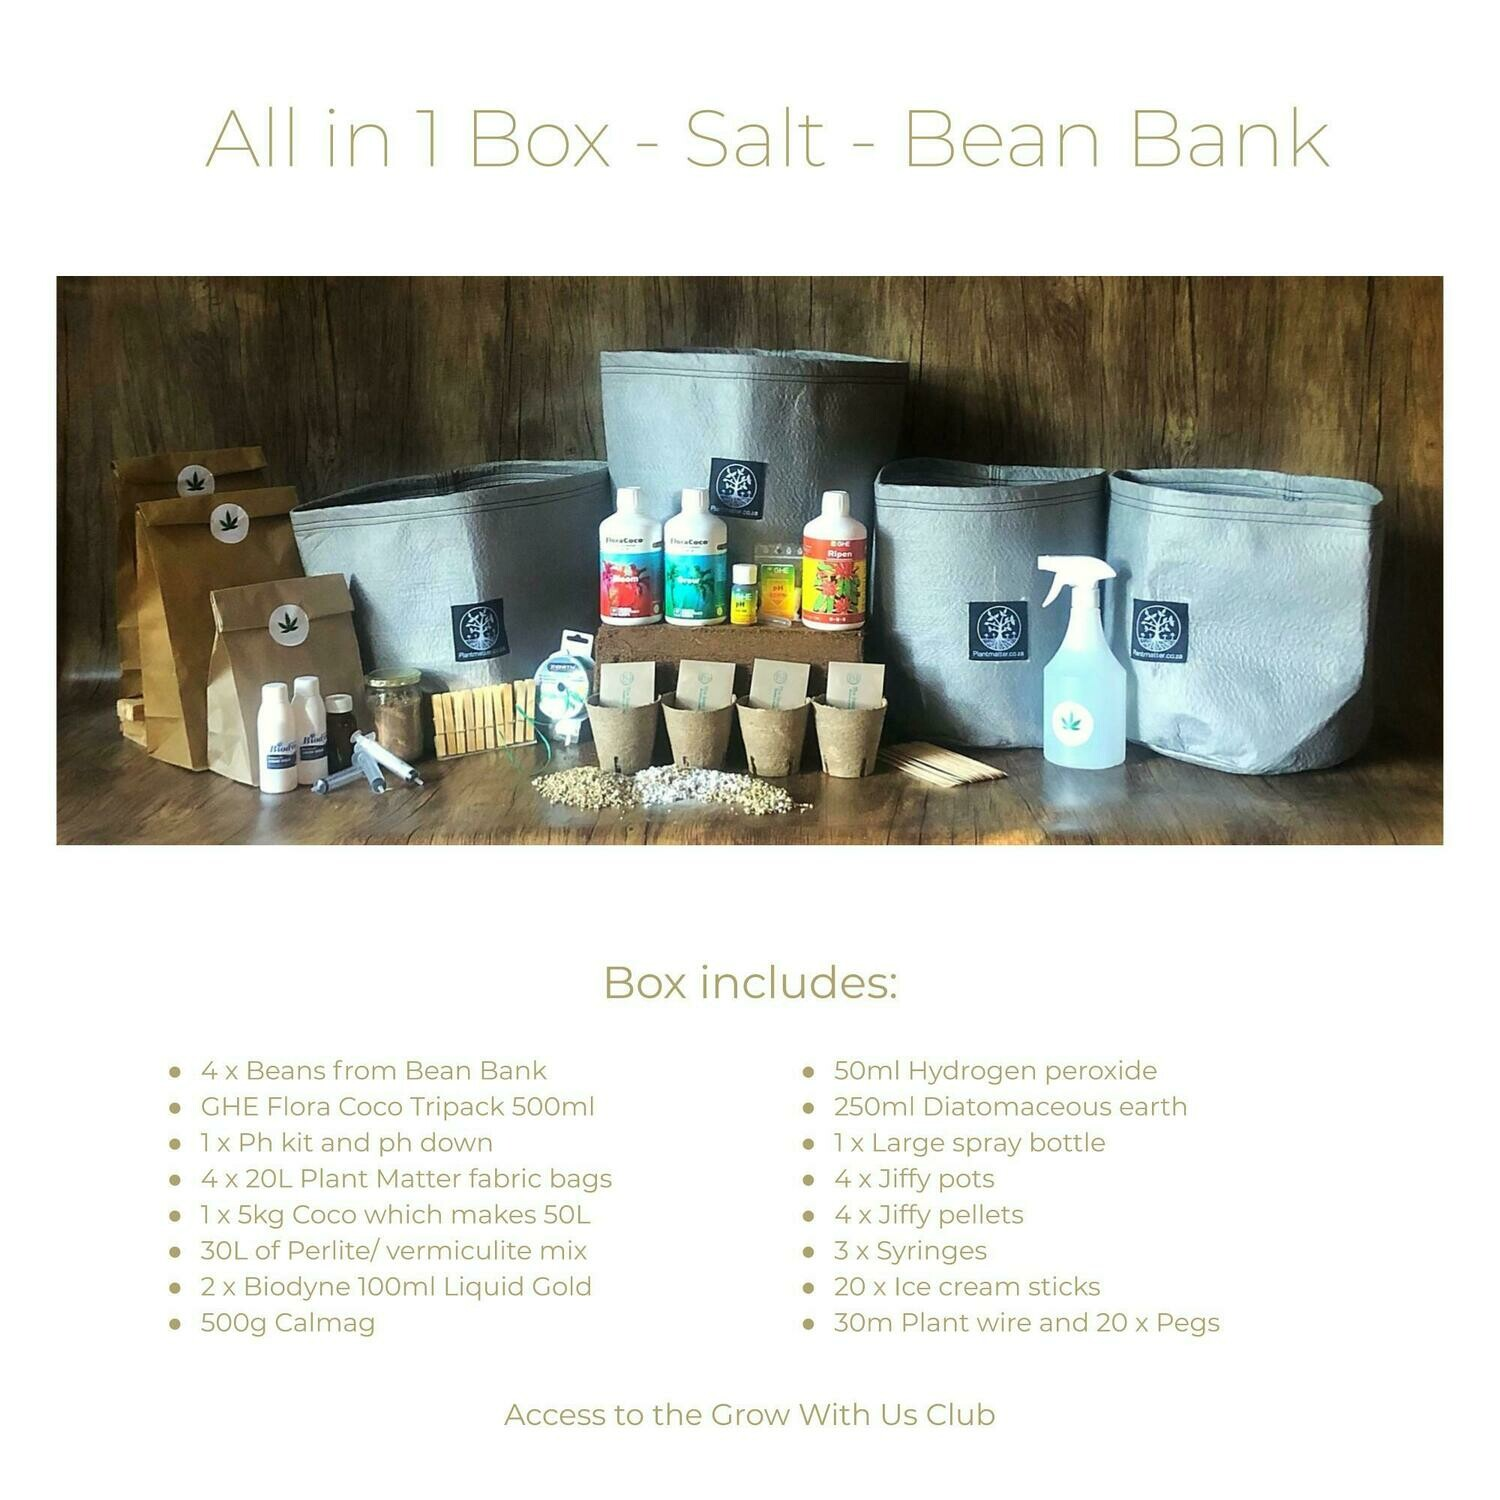 The Bean Bank - All in 1 Box